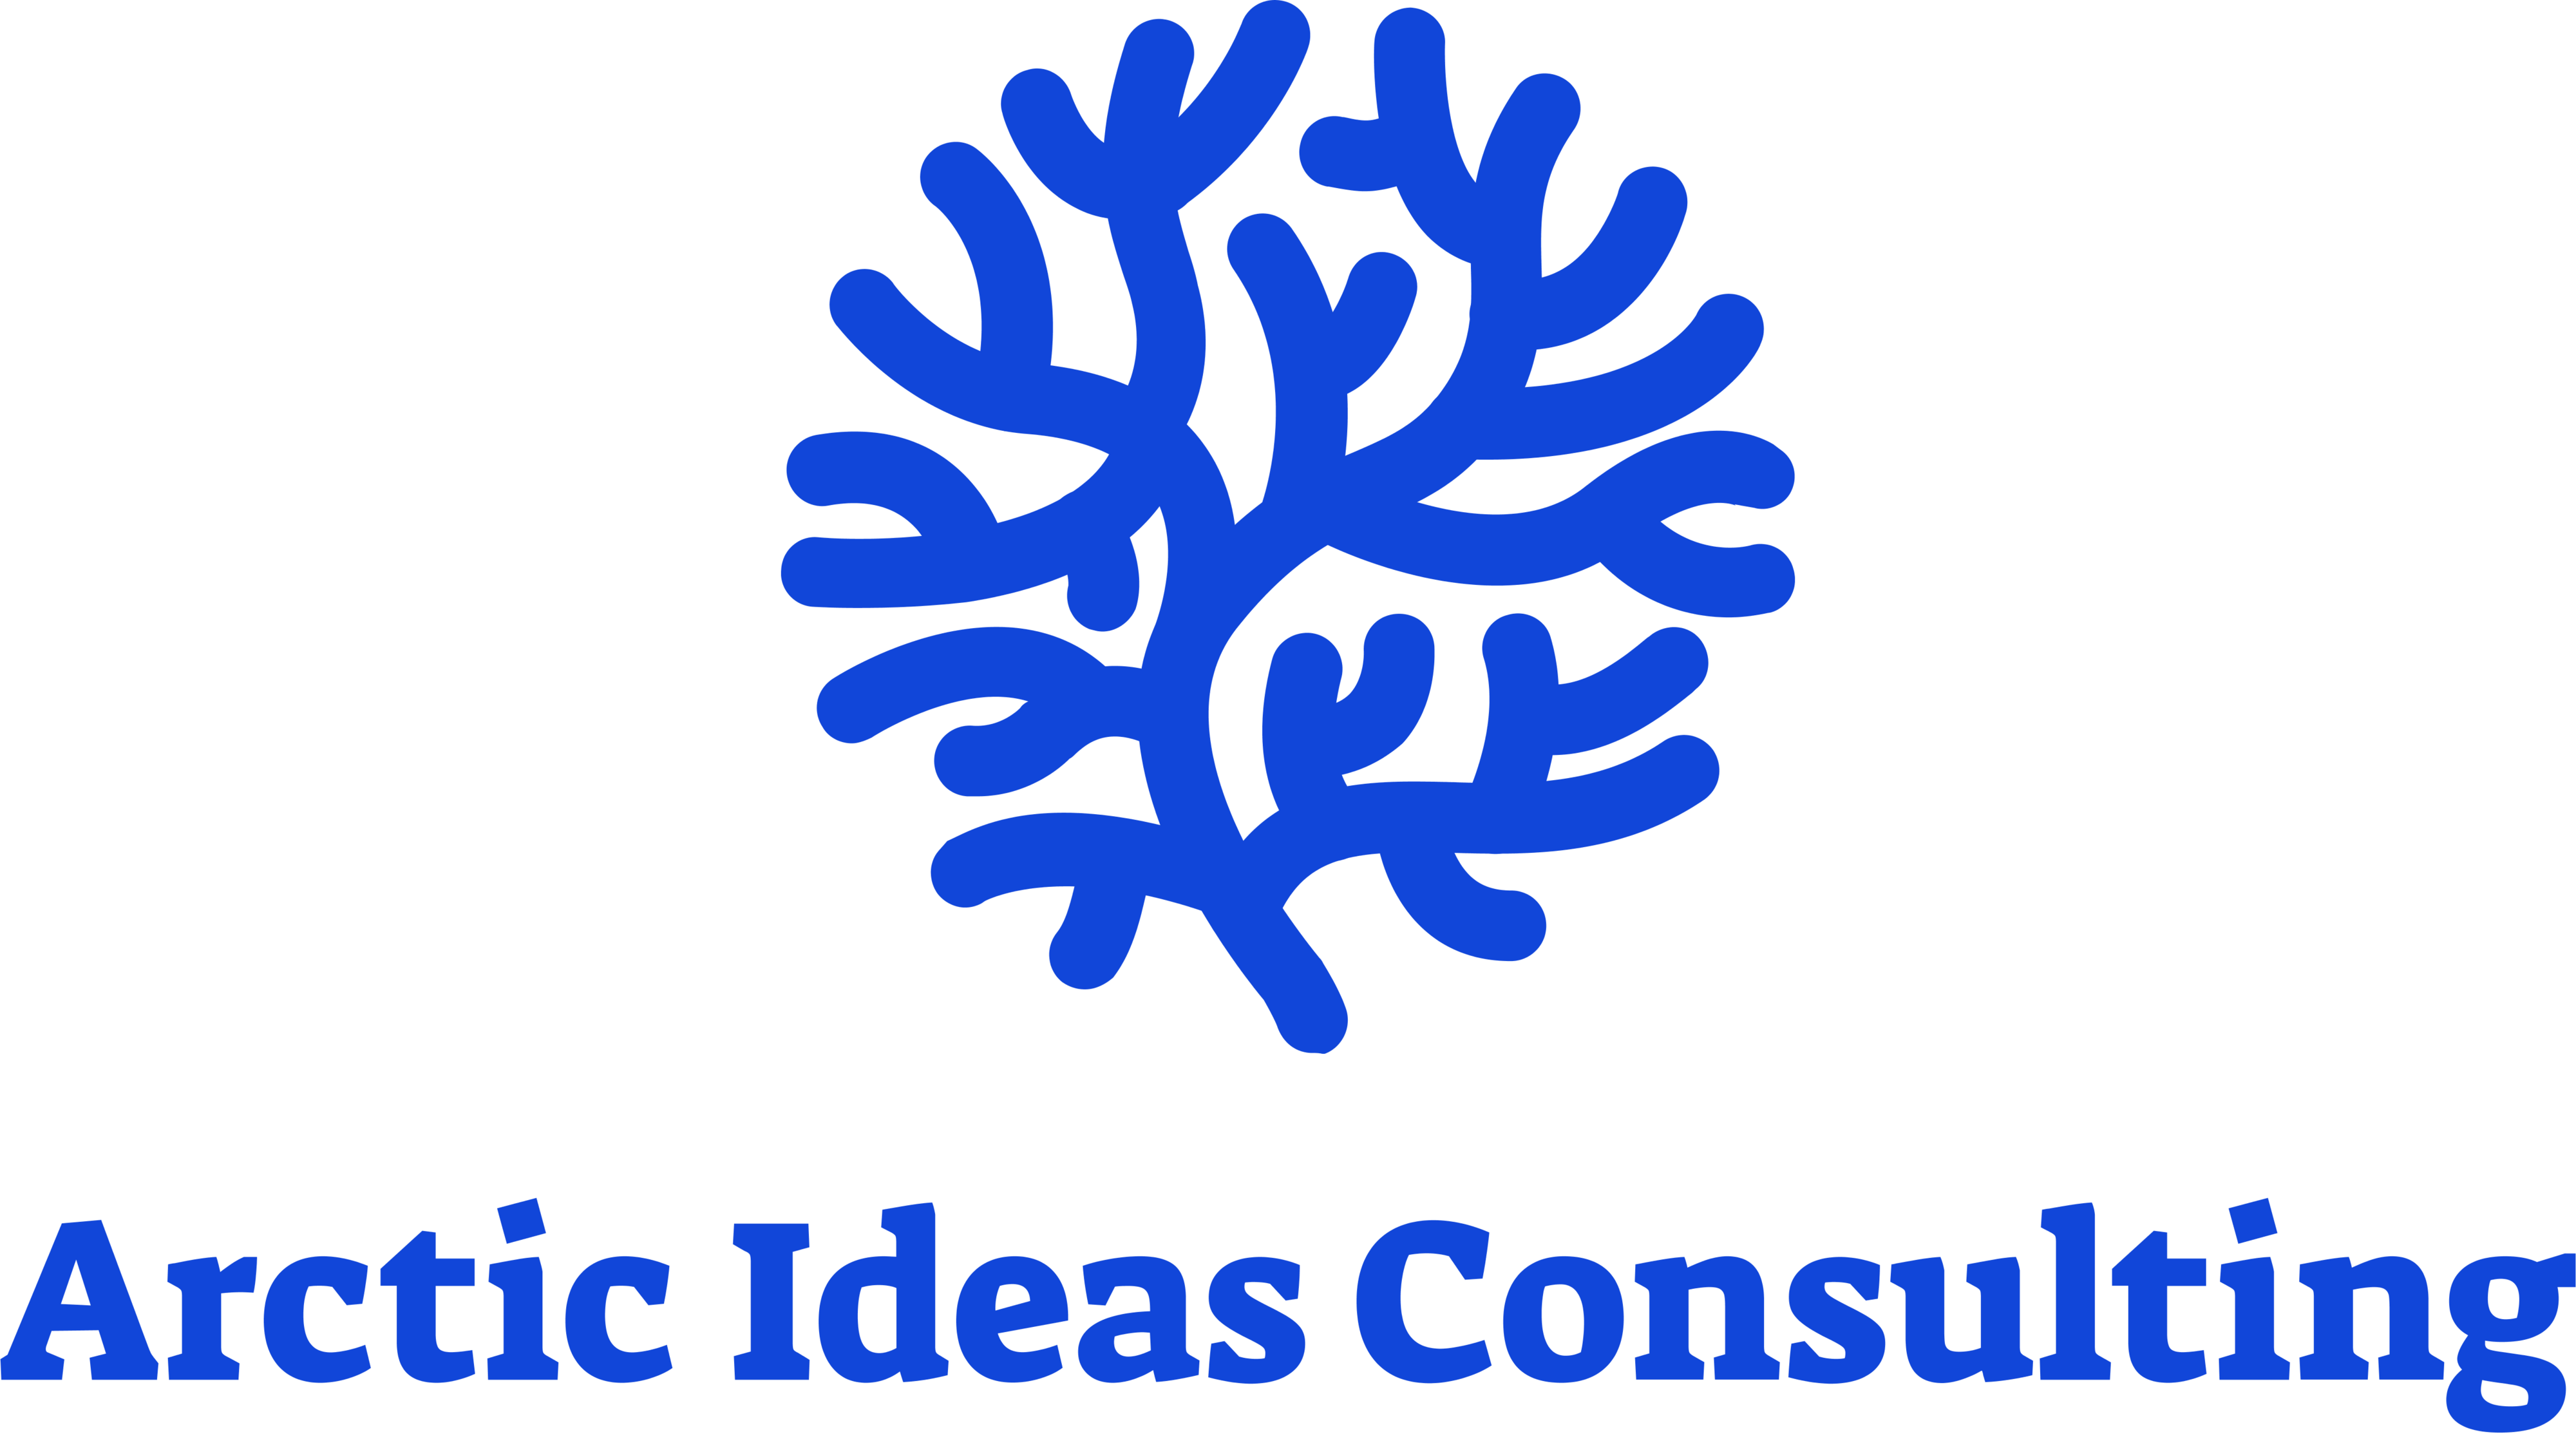 Arctic Ideas Consulting